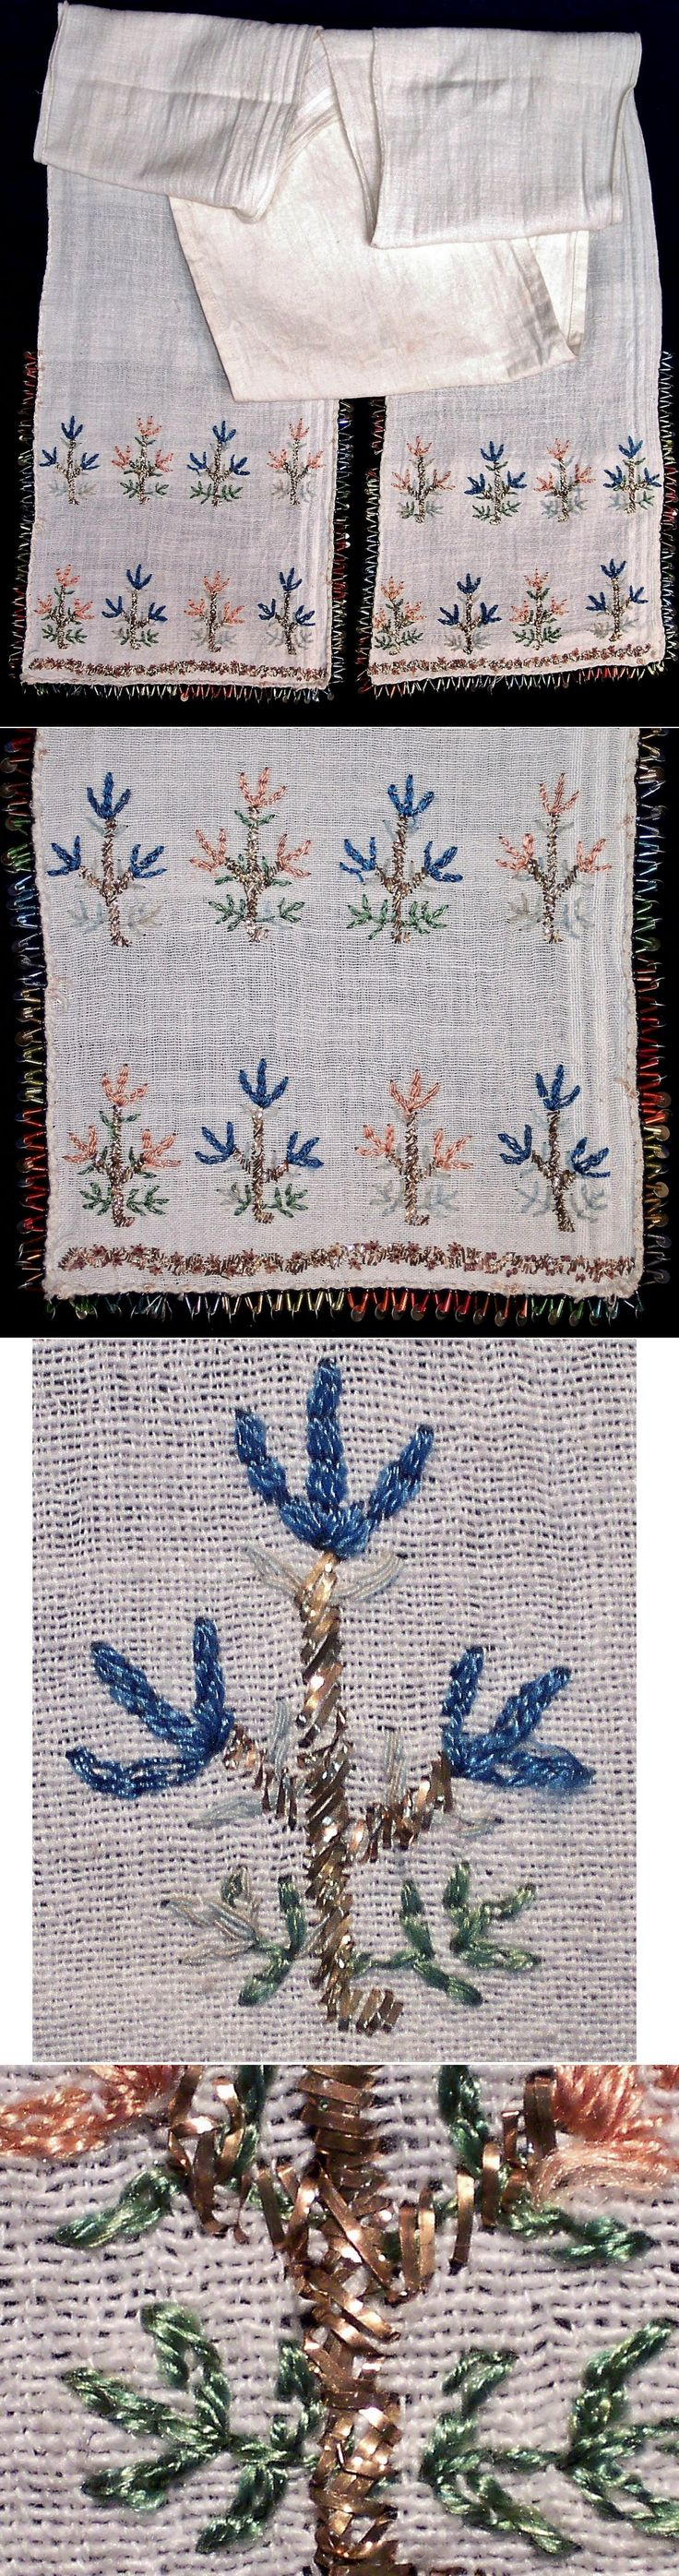 A cotton 'uckur' (waistband) with embroidered ends and edged with tubular glass pearls and metal sequins.  From the Marmara region, 1925-1950.  The edging in Aegean style was added later.  The 'two-sided' embroidery ((identical on both sides of the fabric) is executed in silk (for the coloured parts) and with metal threads and strips ('tel kırma') for  the 'goldwork'.  (Inv.nr. brdw021 - Kavak Costume Collection - Antwerpen/Belgium).